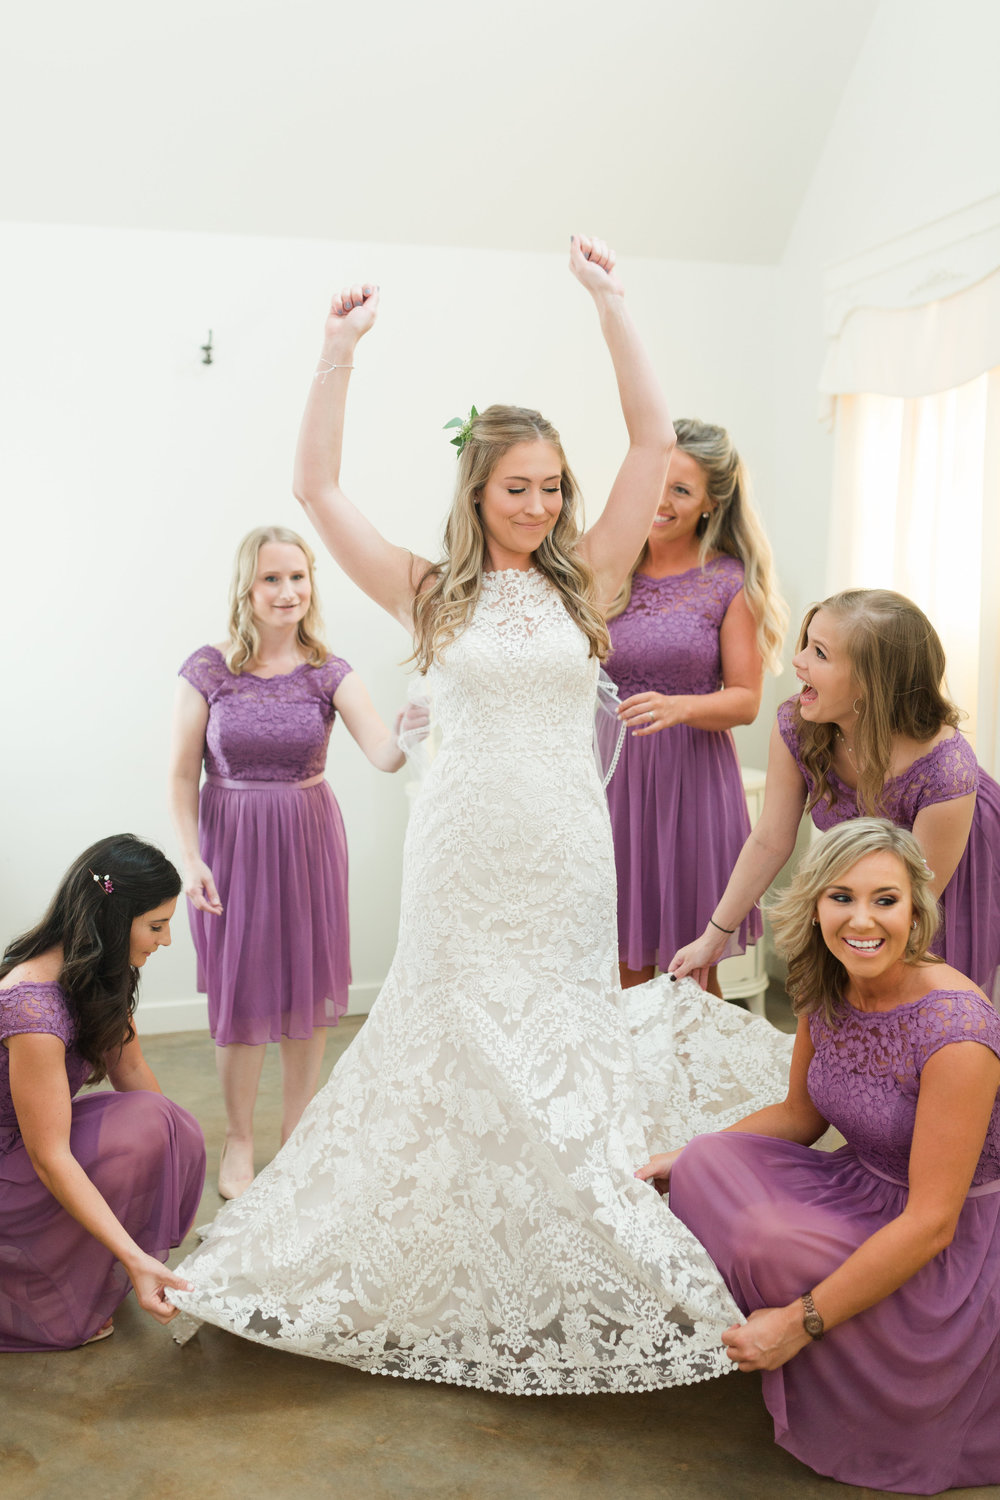 Lace Wedding Dress - Purple Bridesmaid Dresses - Heritage House Wedding - Georgetown, Texas Wedding Venue